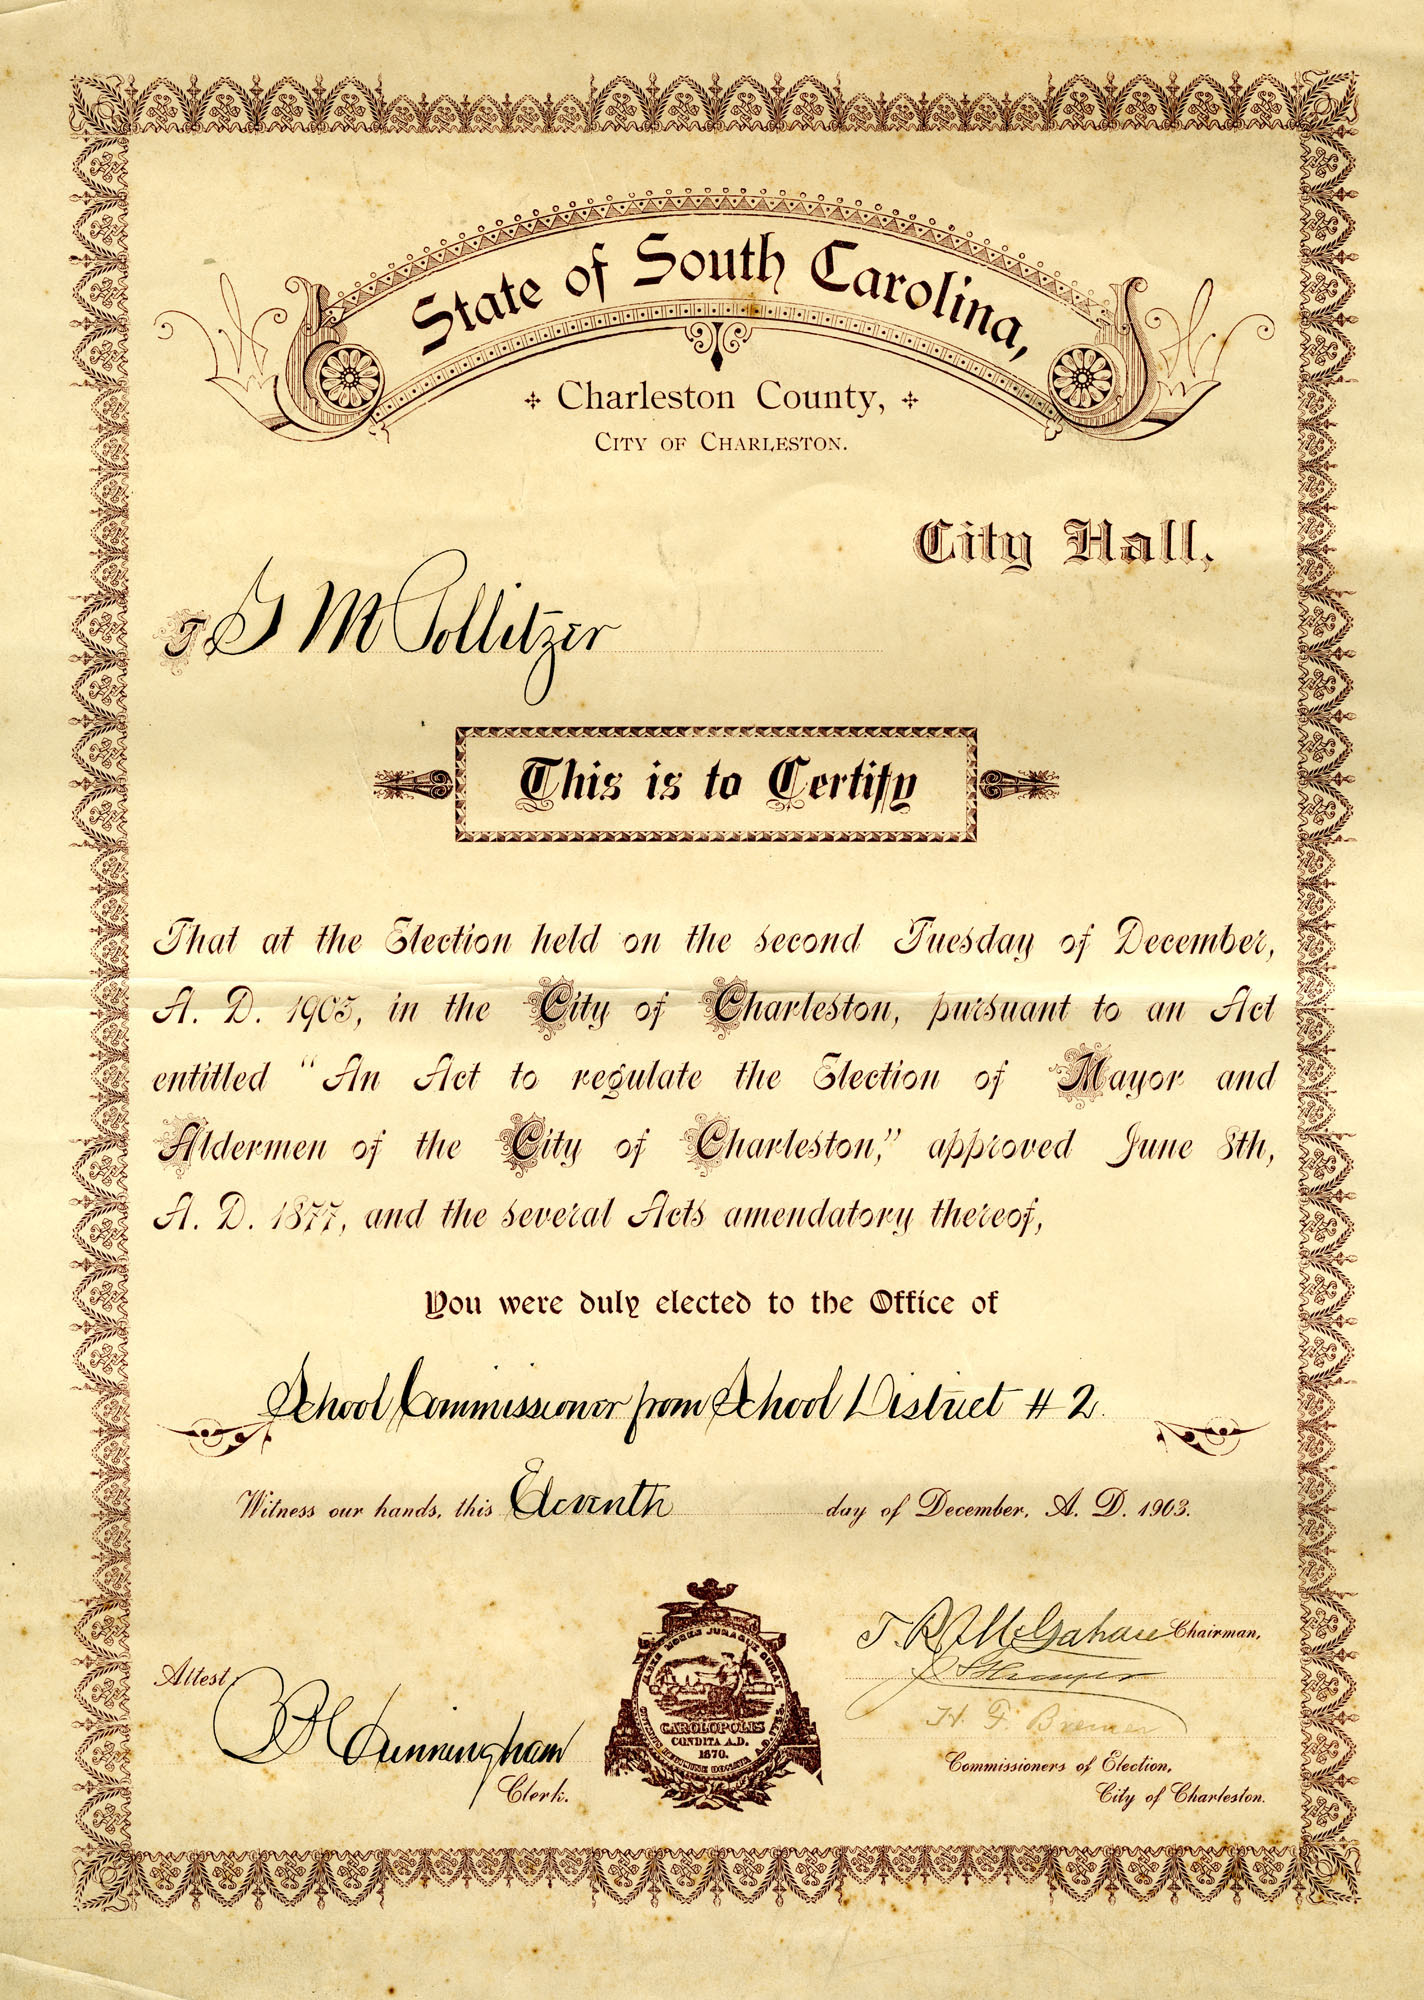 Gustave M. Pollitzer School Commissioner Certification